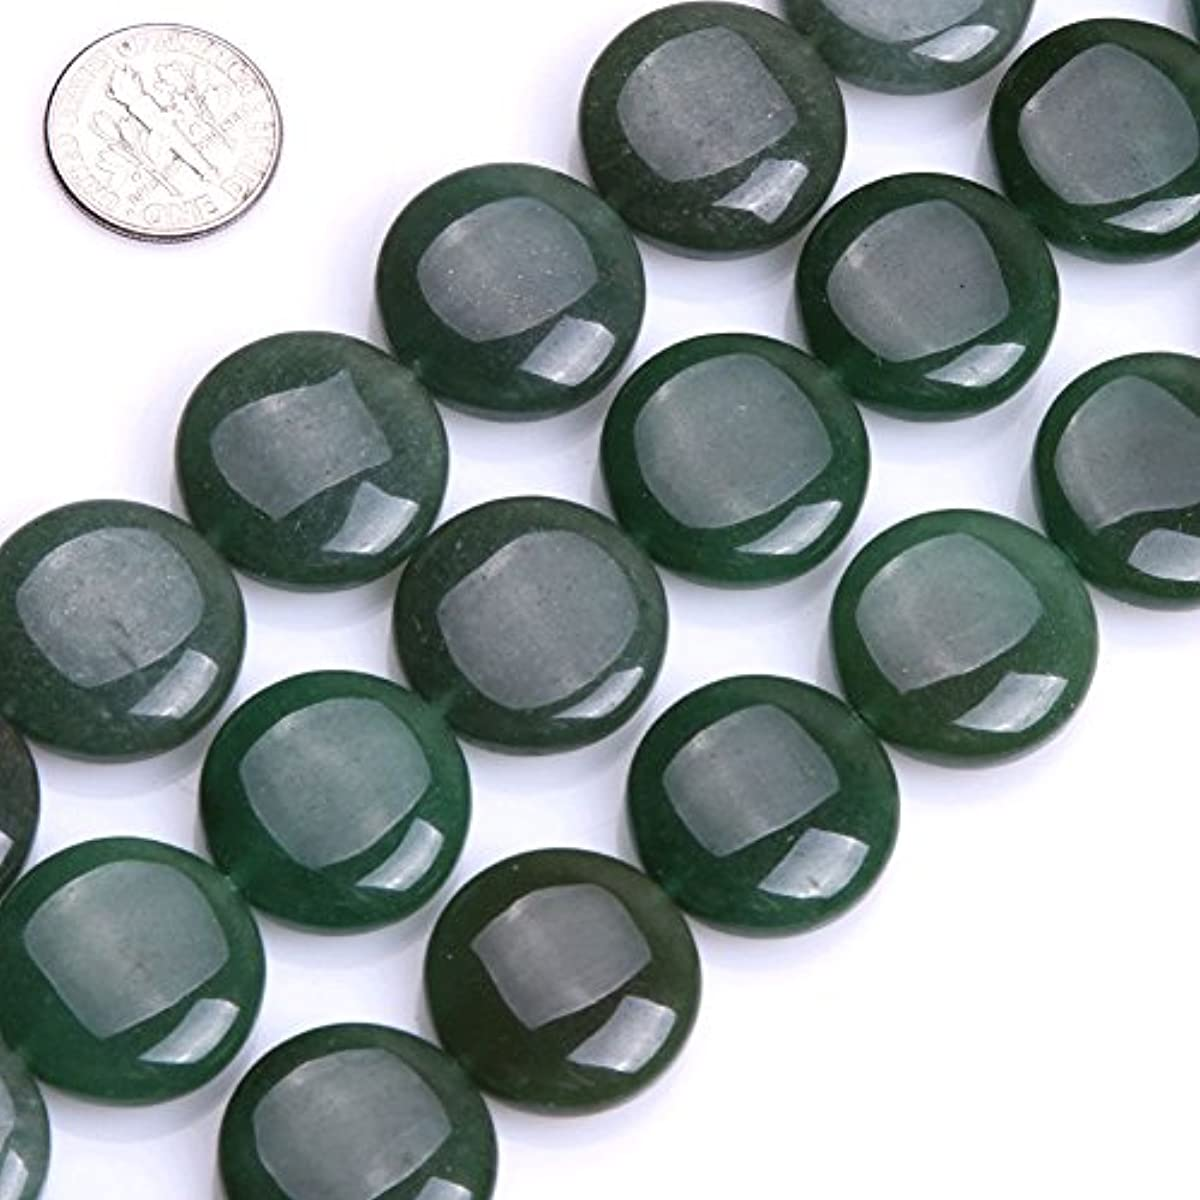 GEM-inside Aventurine Gemstone Loose Beads Natural Green 20mm Smooth Coin Crystal Energy Stone Power For Jewelry Making 15